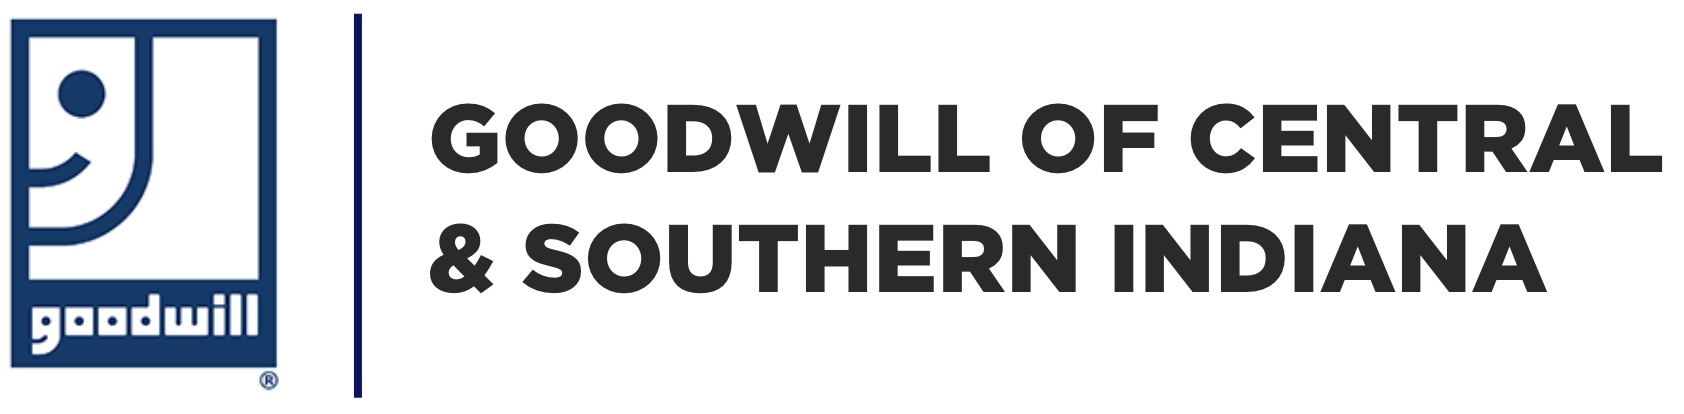 Goodwill of Central and Southern Indiana logo